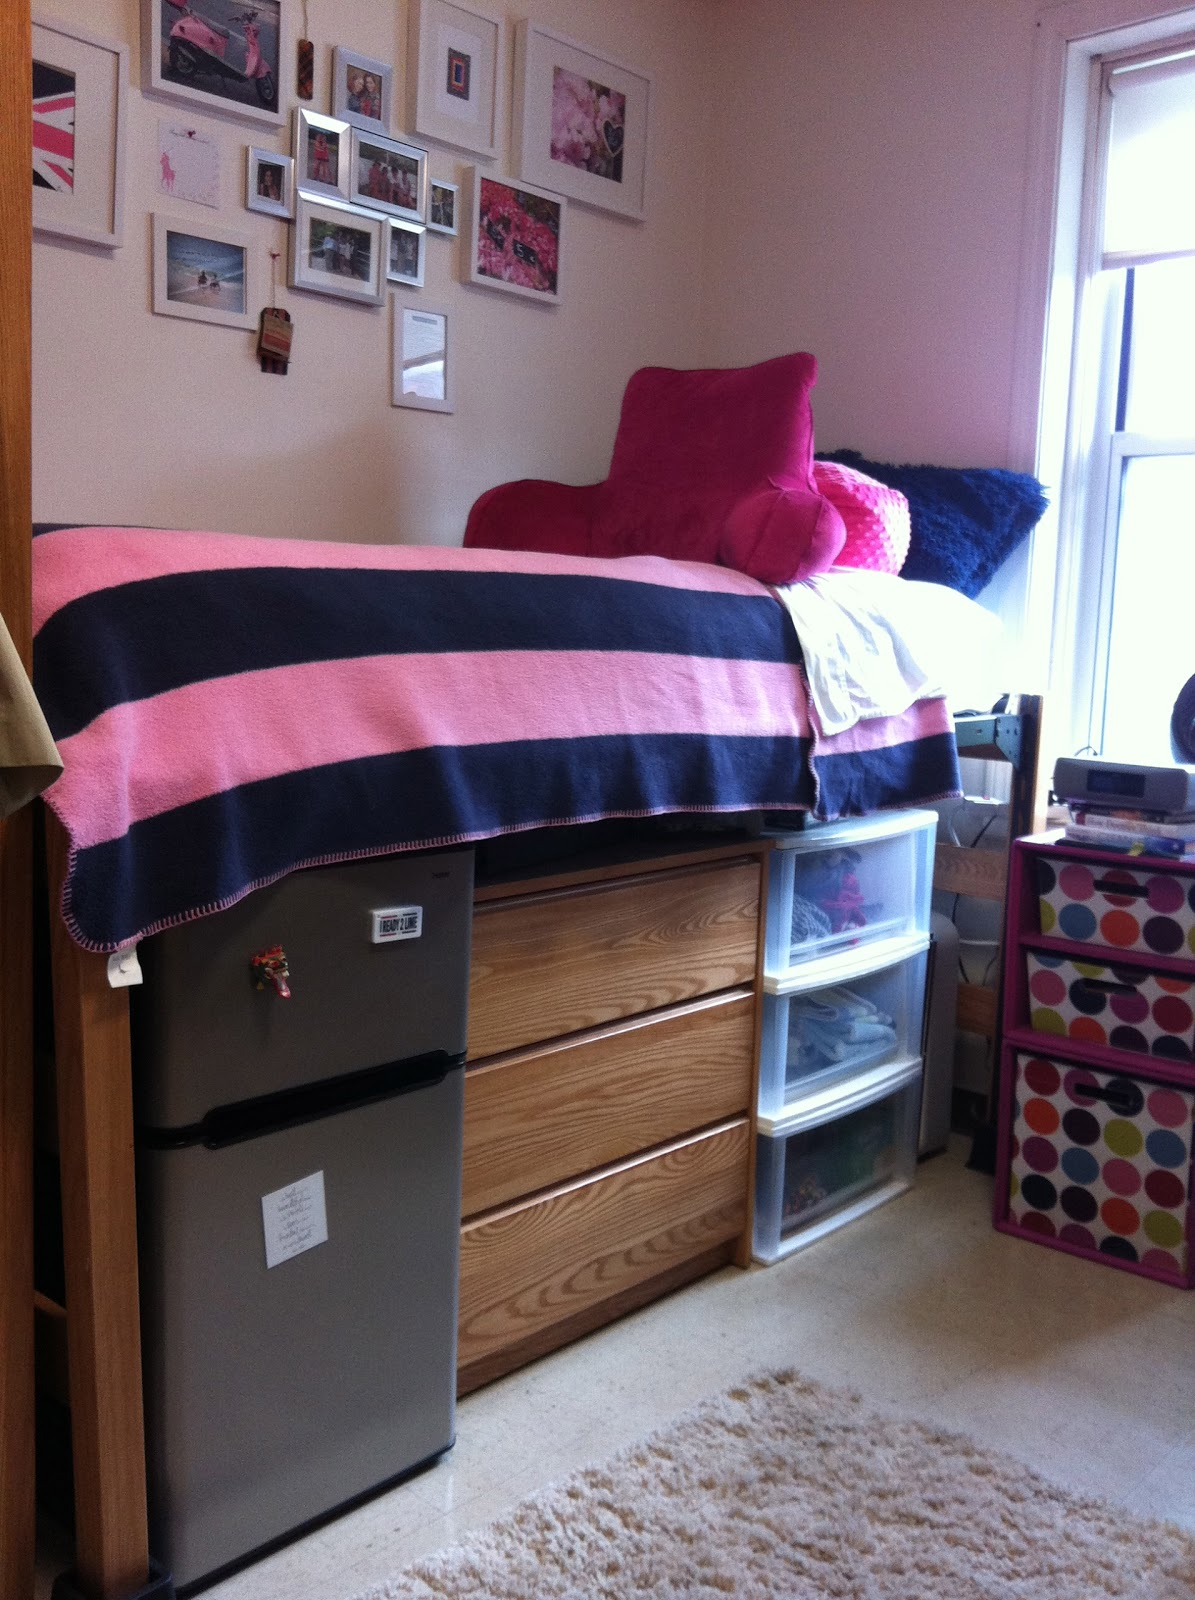 Dorm Room Beds: A Girl In The Know: College Prep